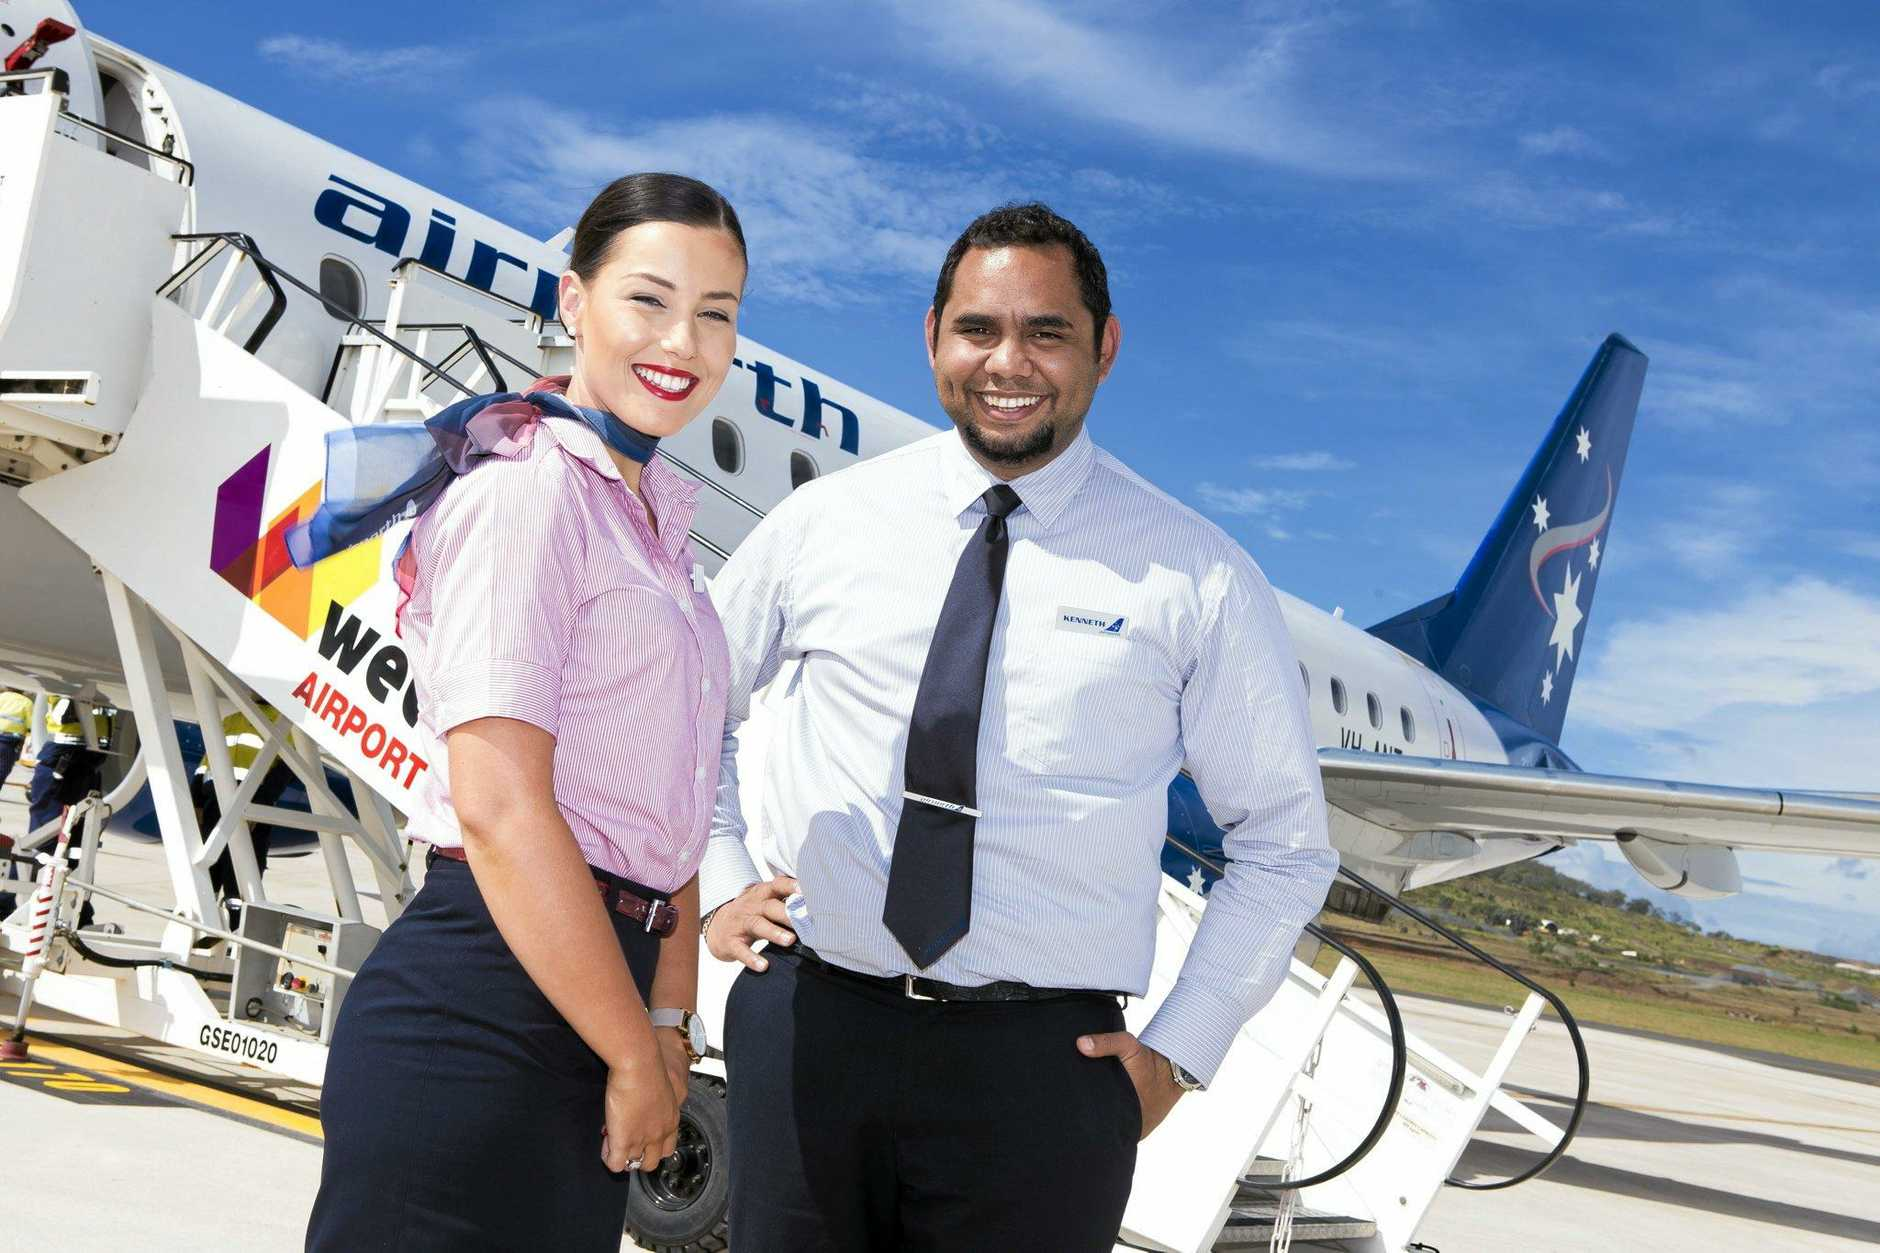 Toowoomba flight attendants Sarah Parker and Kenneth Torres join the ranks of Airnorth.